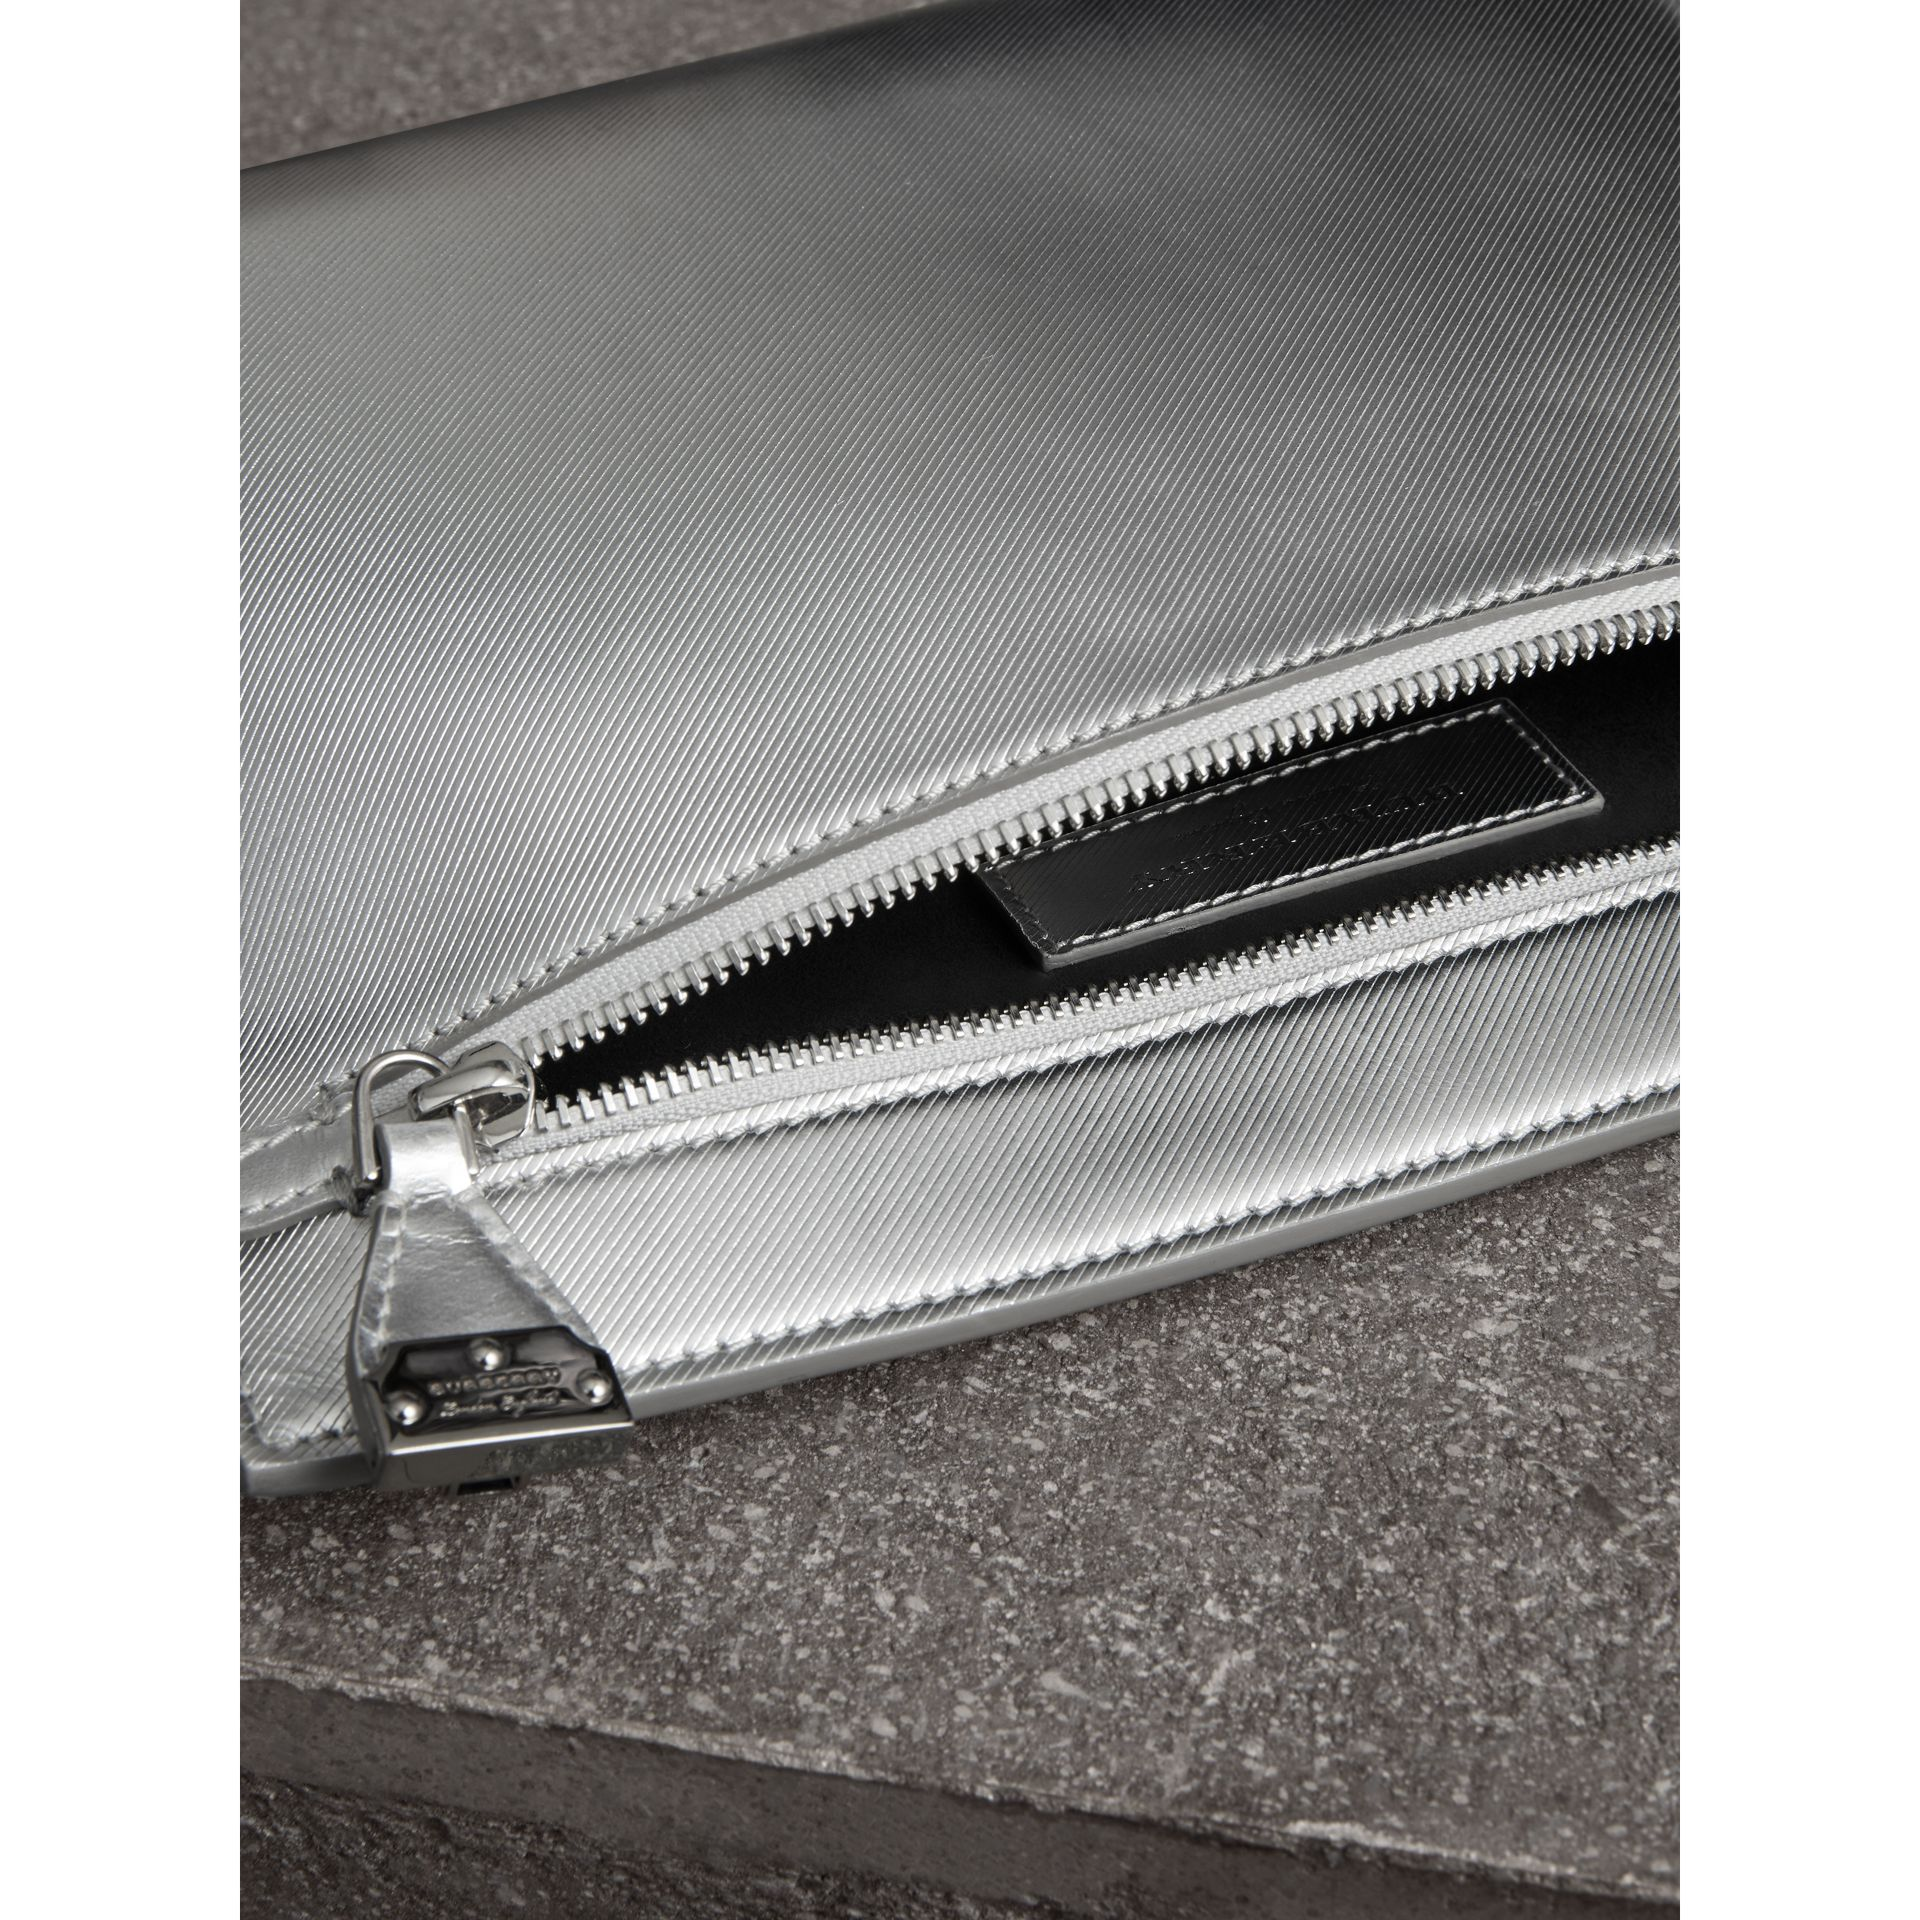 Metallic Trench Leather Pouch in Silver - Women | Burberry - gallery image 5